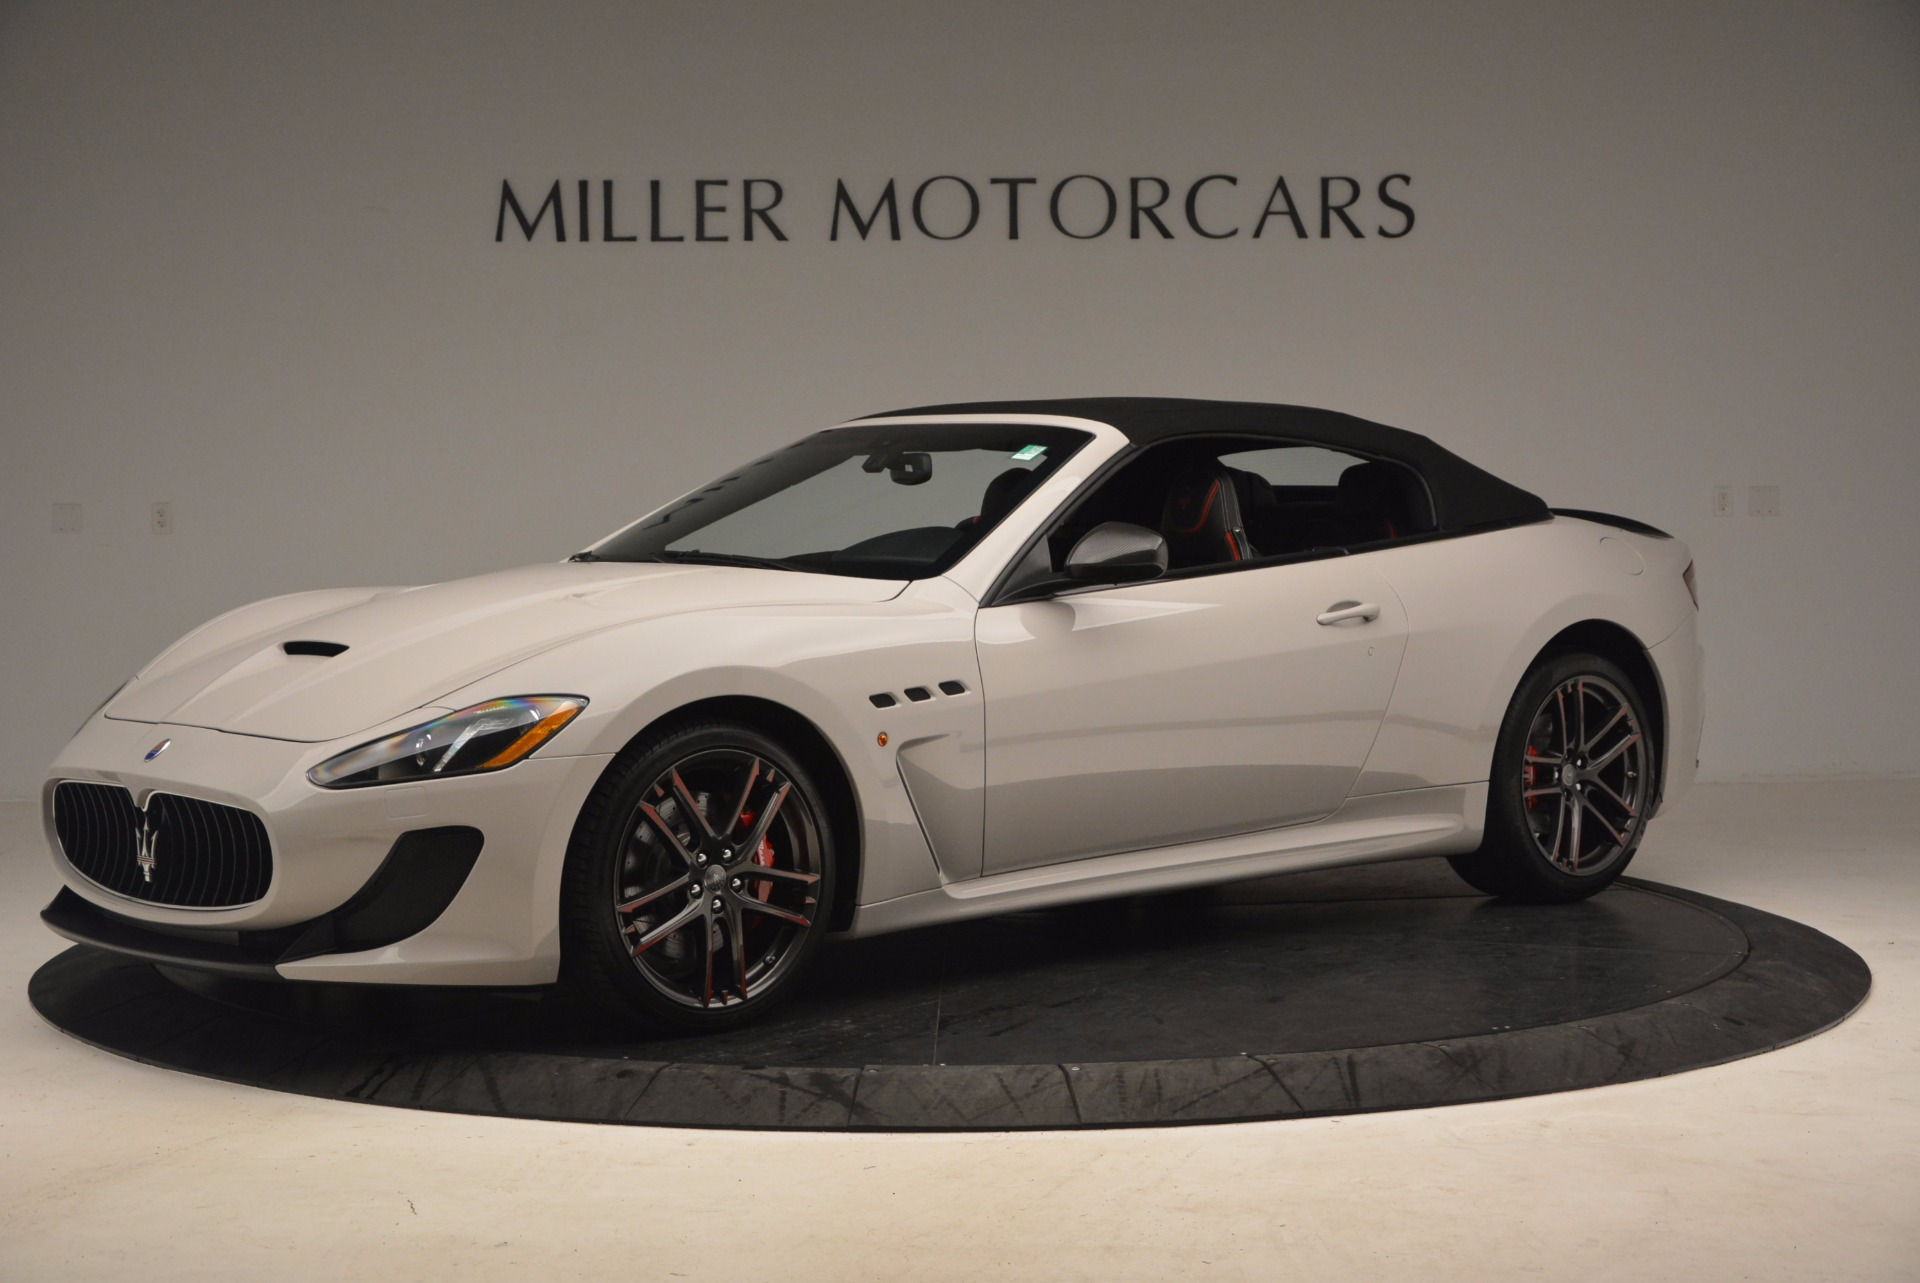 Used 2015 Maserati GranTurismo MC Centennial For Sale In Westport, CT 1107_p14